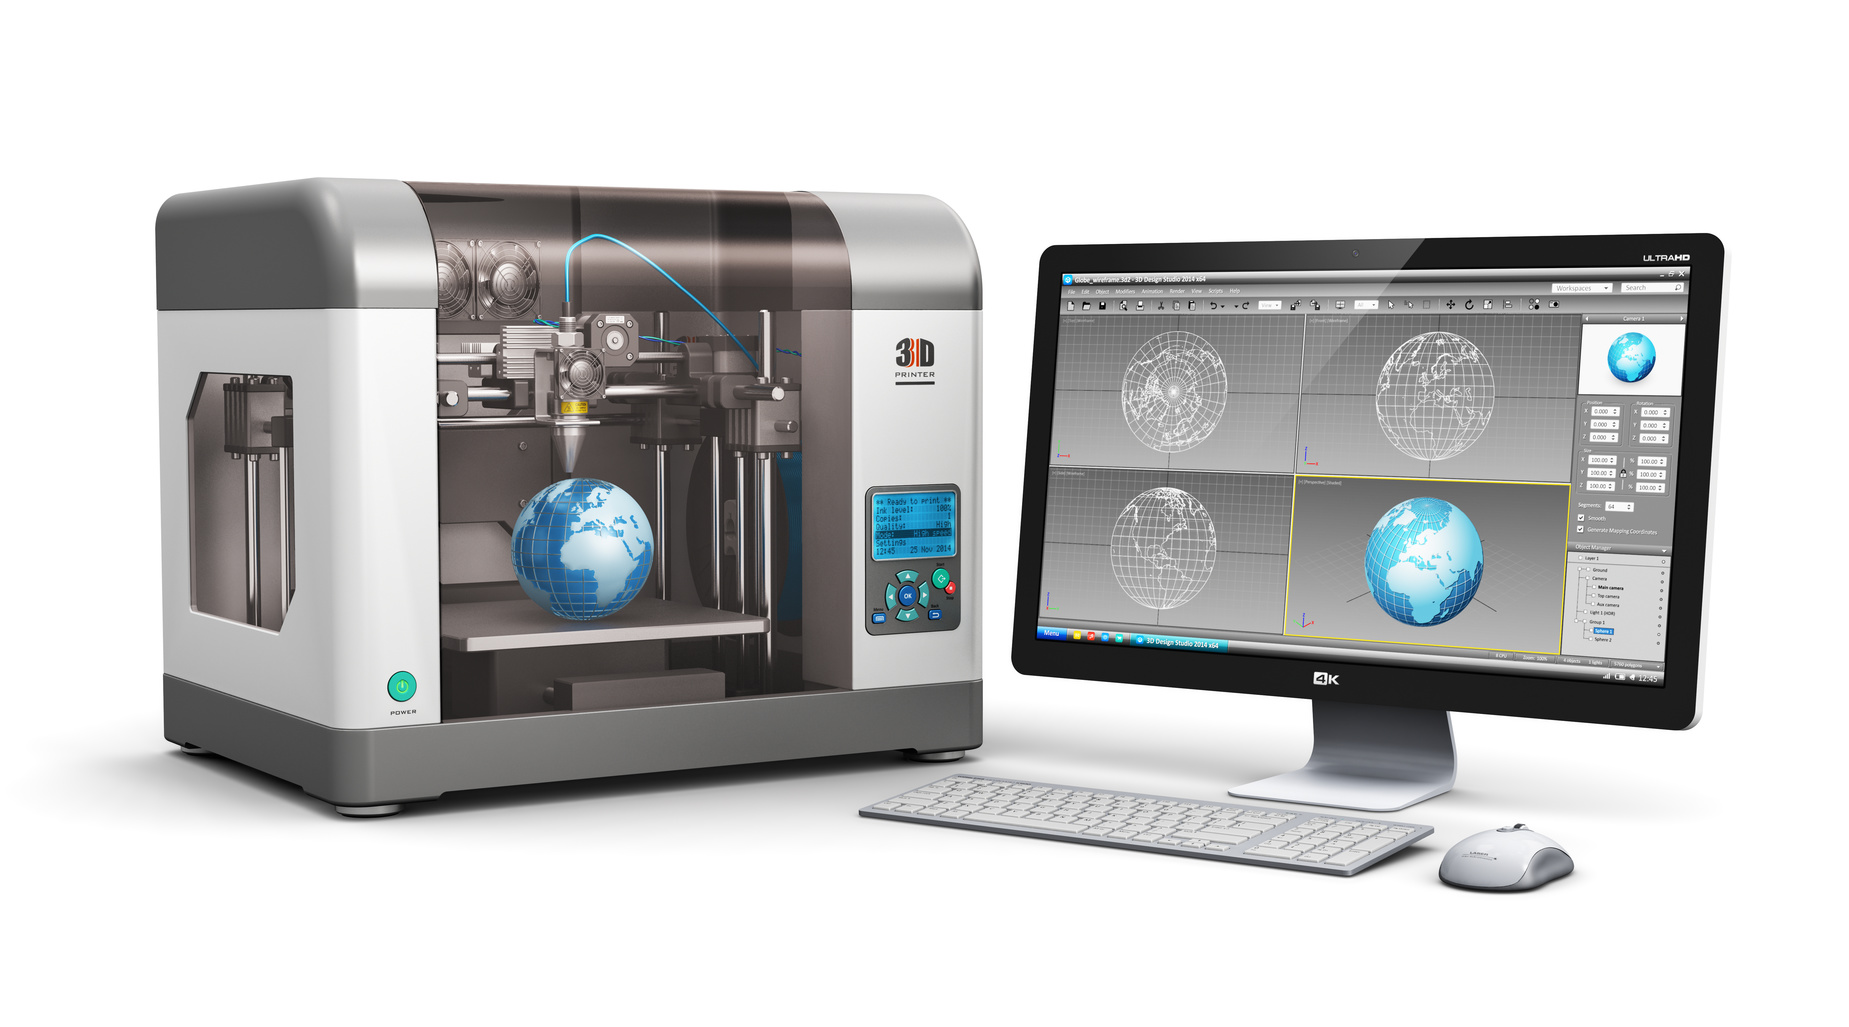 Creative 3D ABS plastic printing technology business concept: modern 3D printer and professional desktop workstation computer PC with 3D design software interface isolated on white background